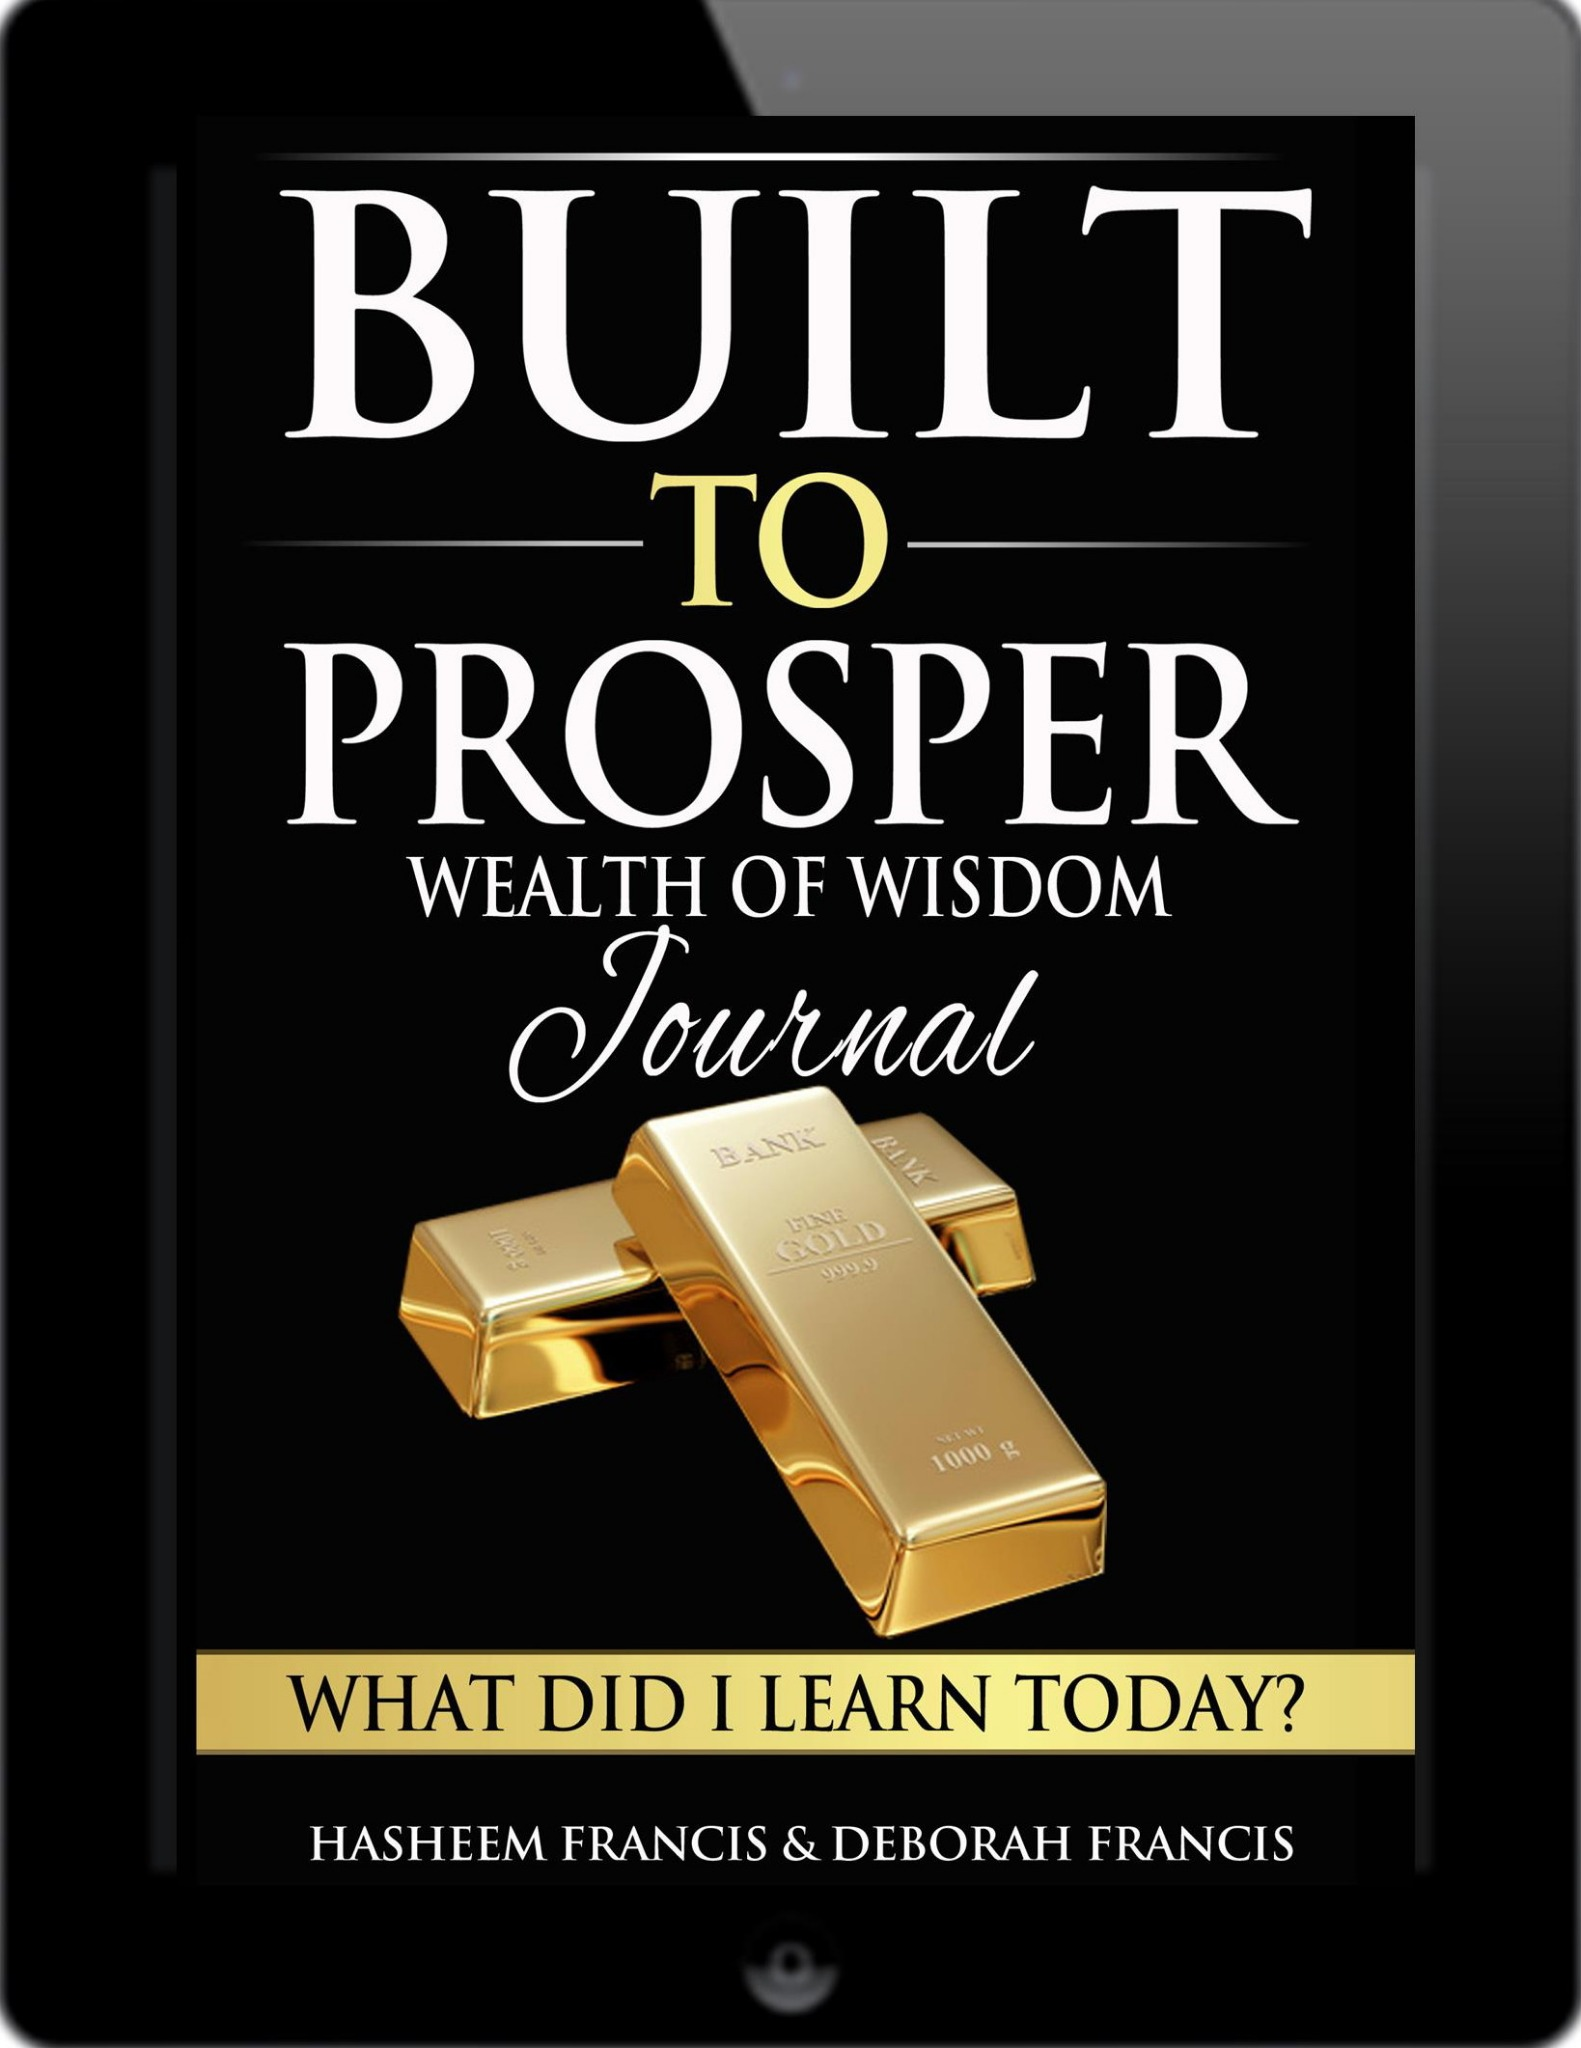 Built To Prosper Wealth of Wisdom Journal (ebook)